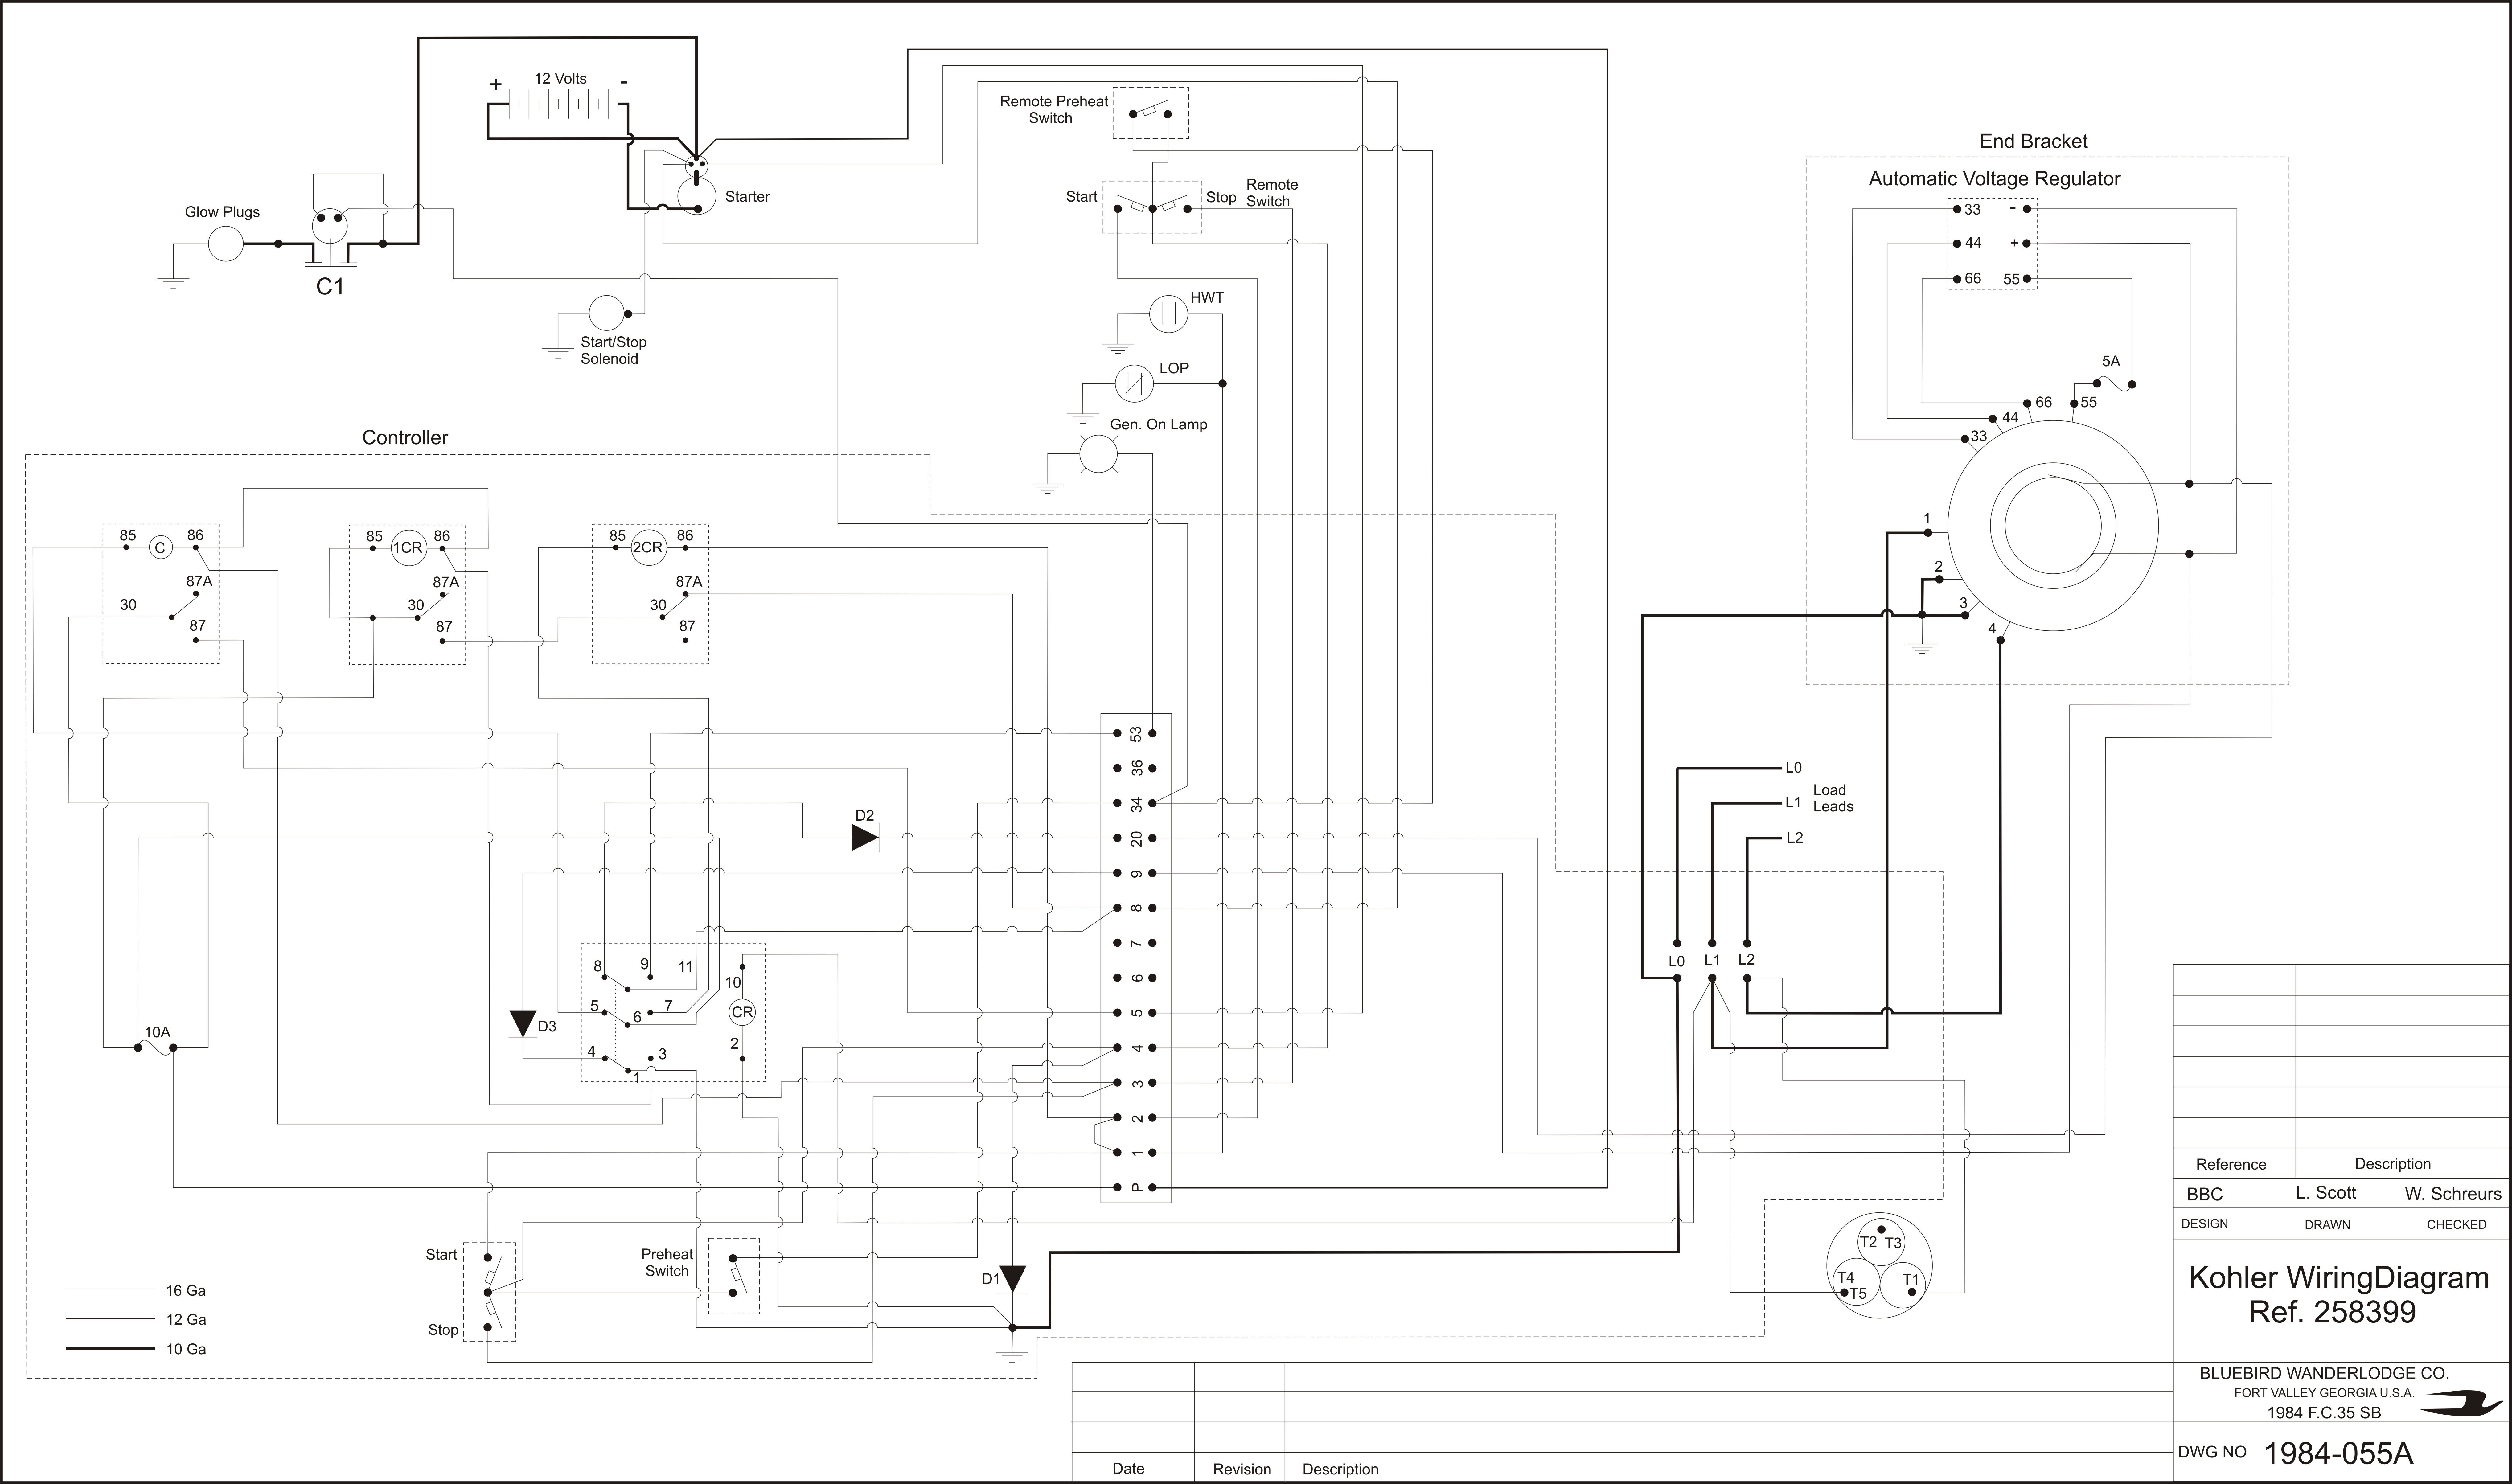 887327 1991 Charging Circuit redrawn.jpg <dir> 1991-1994 diagrams 2195021  1991_WB_BattChargeCkt.pdf